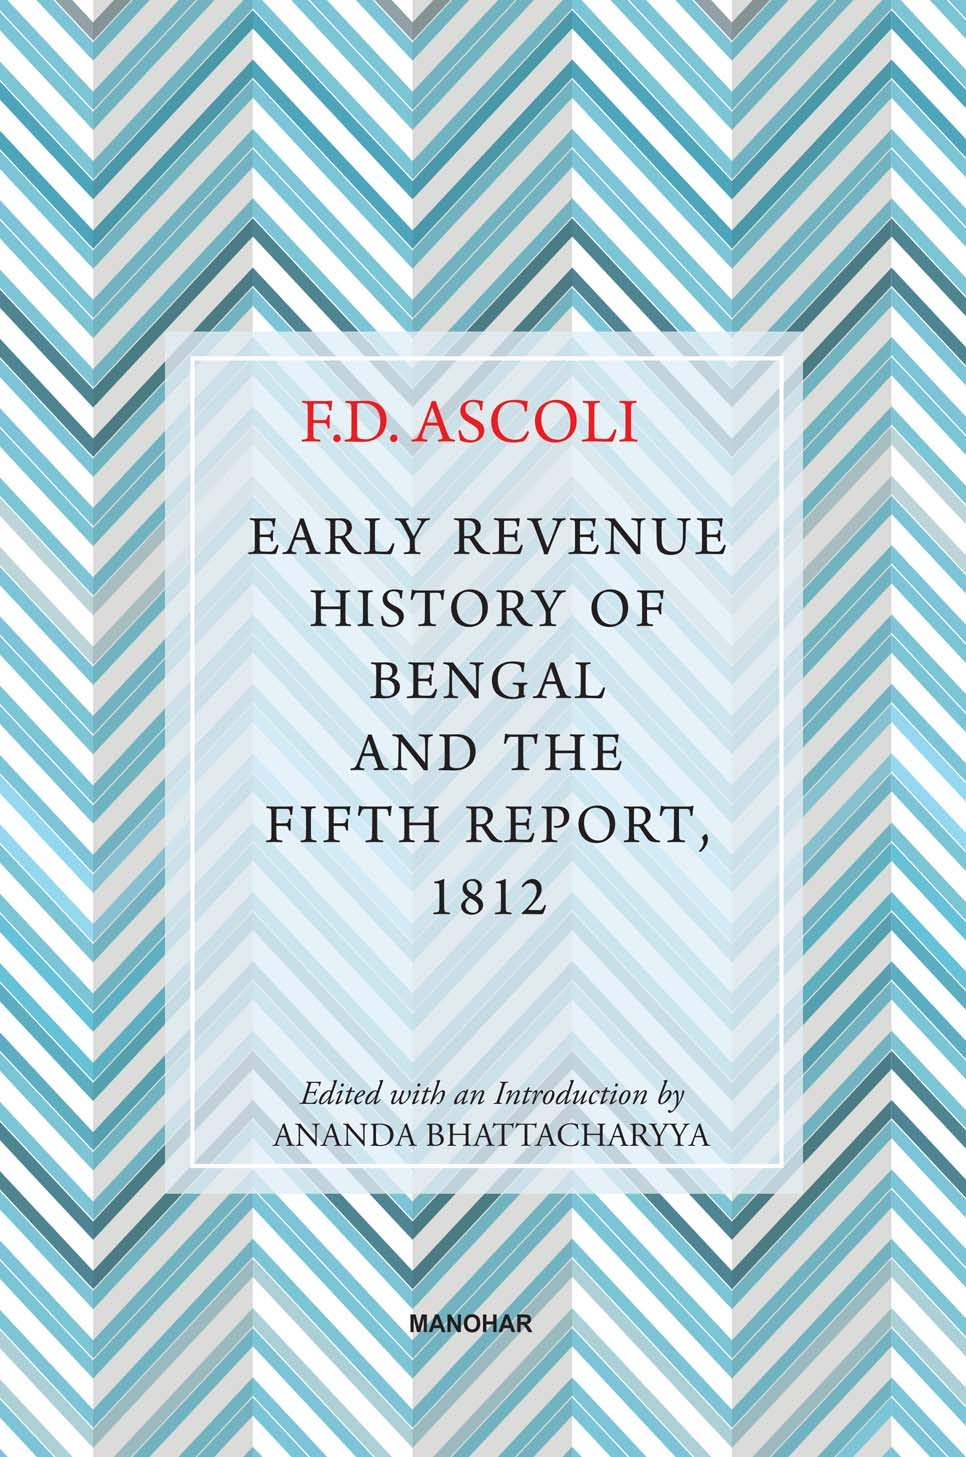 EARLY REVENUE HISTORY OF BENGAL AND THE FIFTH REPORT, 1812